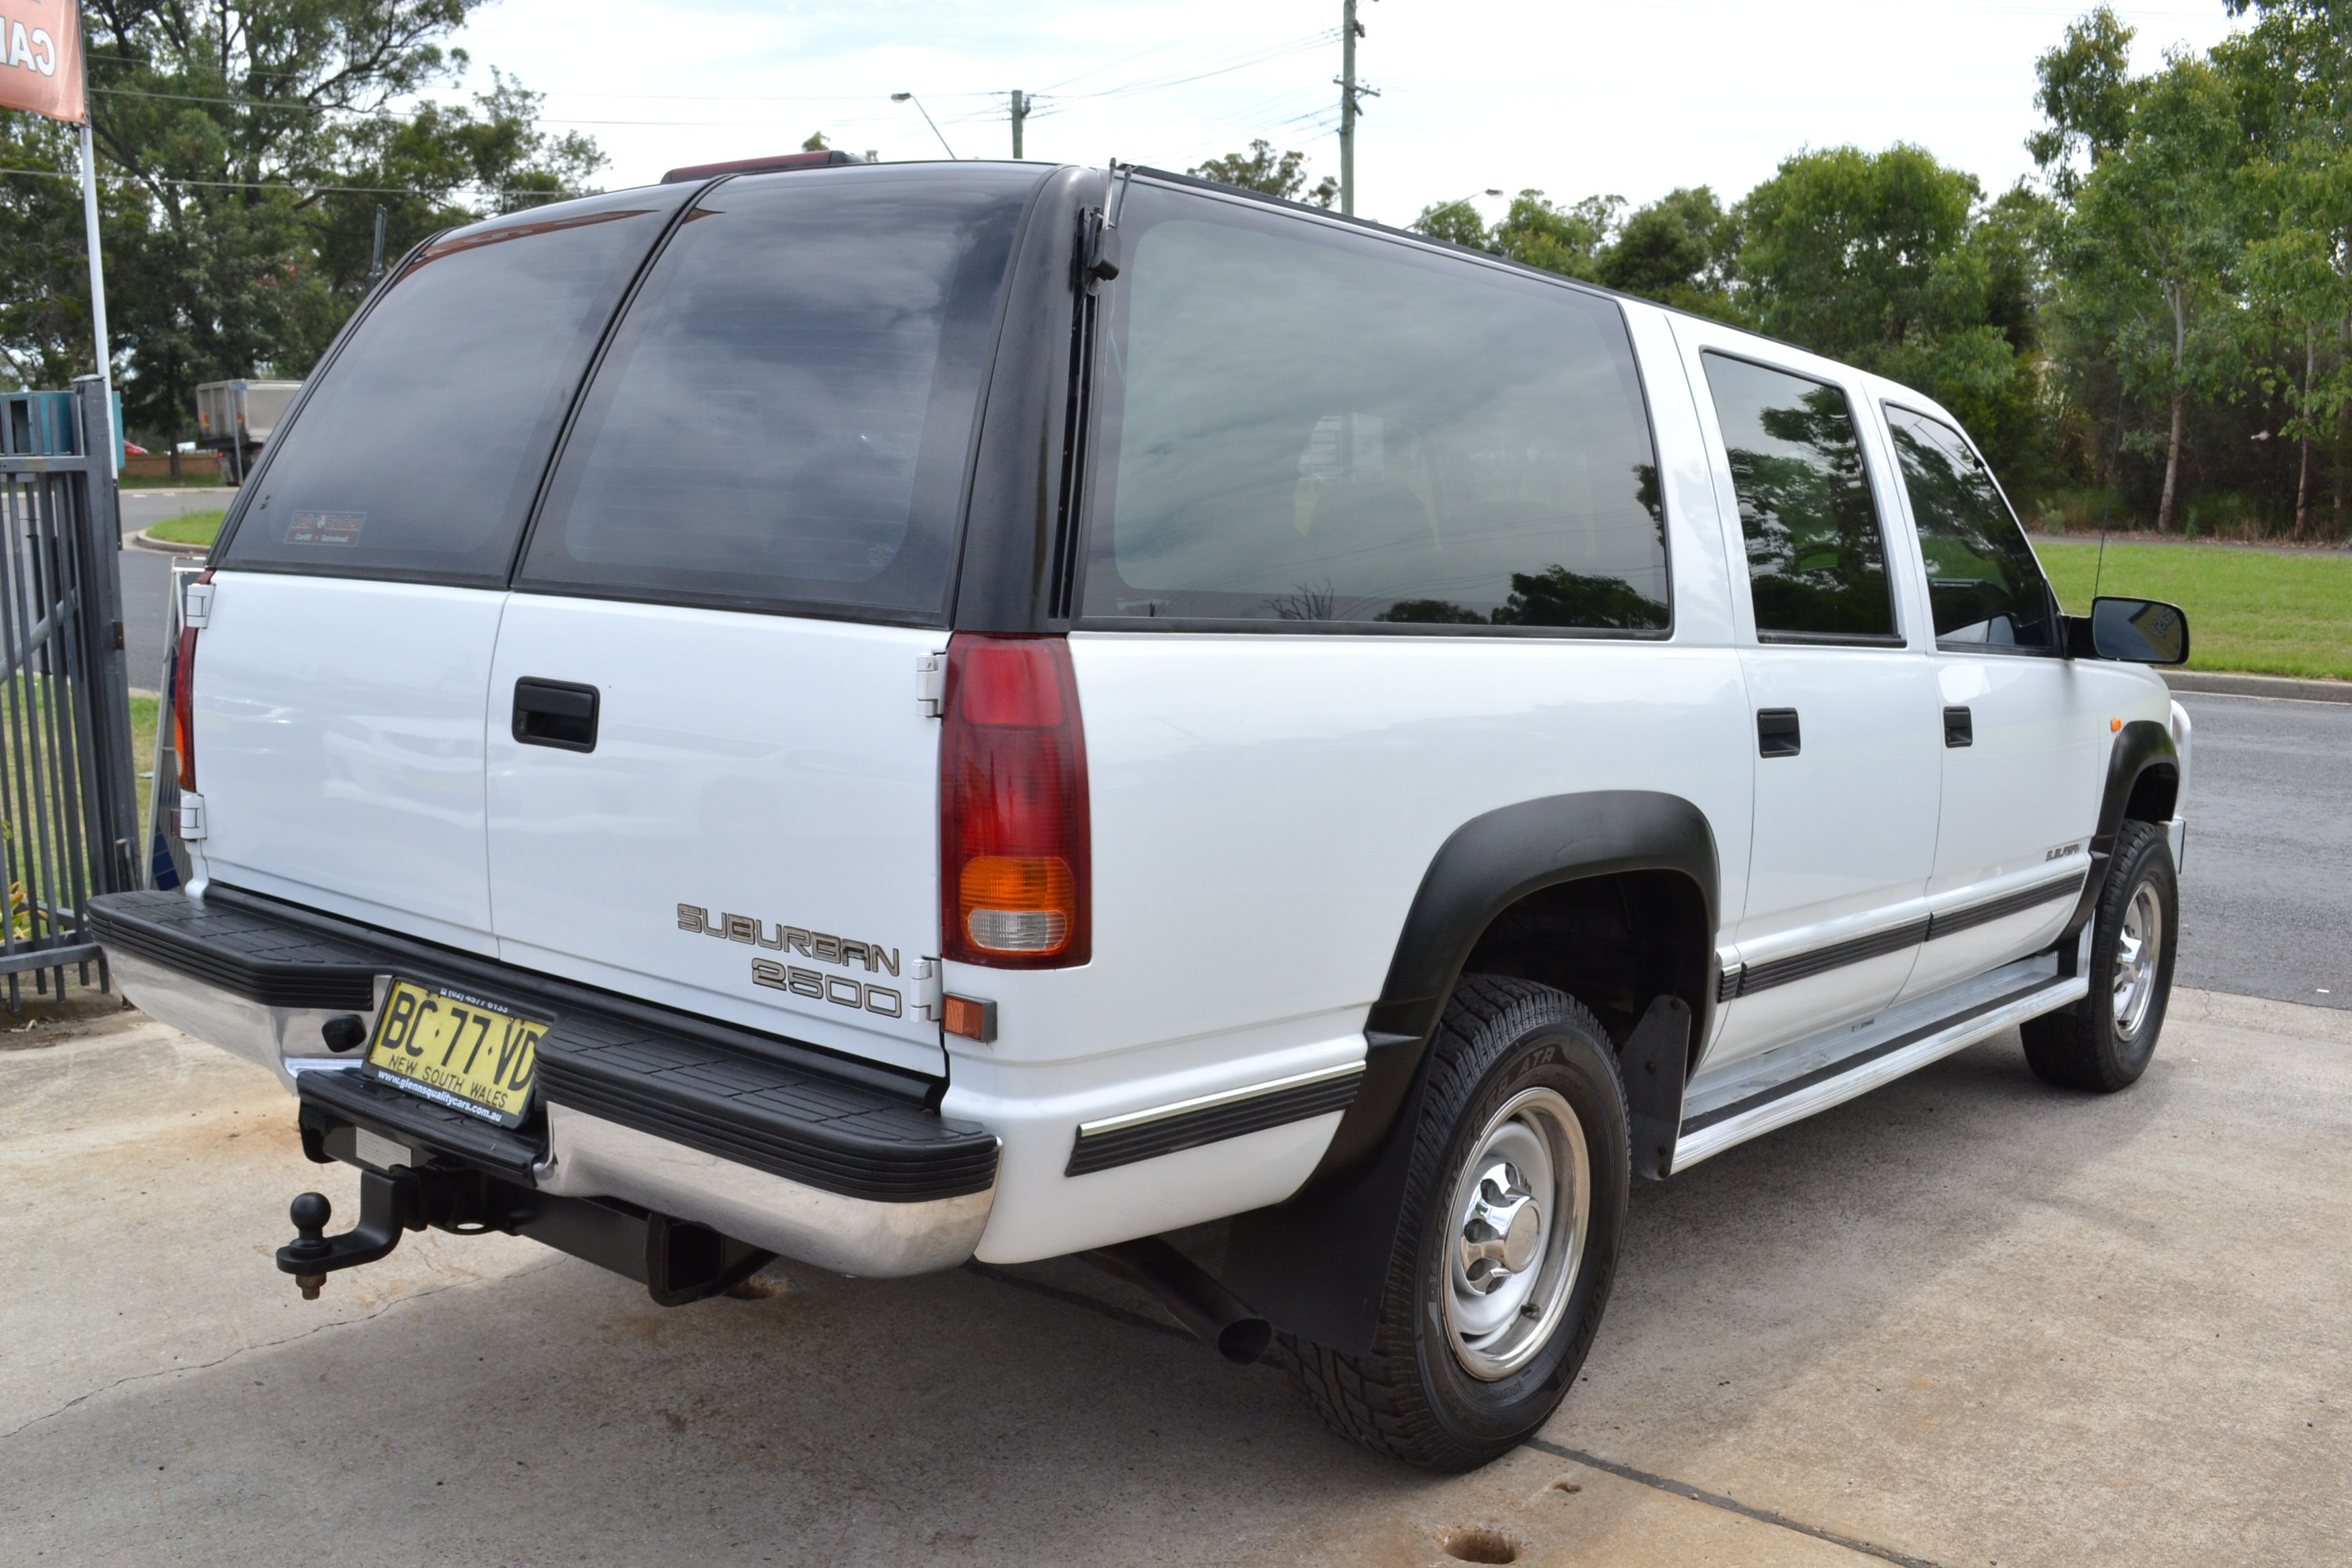 1998 Holden Suburban 2500 4x4 K8 Turbo Diesel 4 Speed Automatic